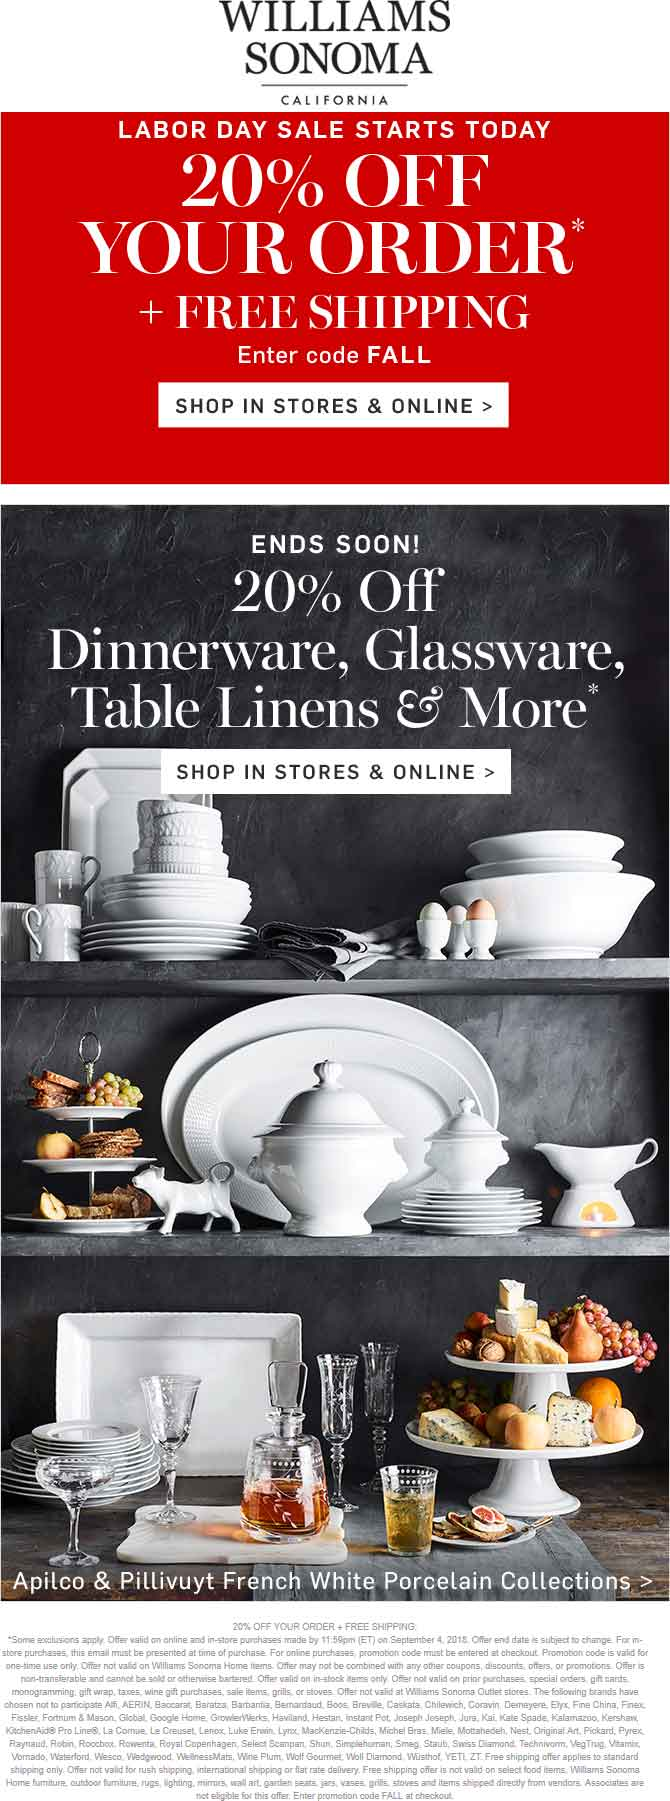 Williams Sonoma Coupon June 2020 20% off at Williams Sonoma, or online via promo code FALL